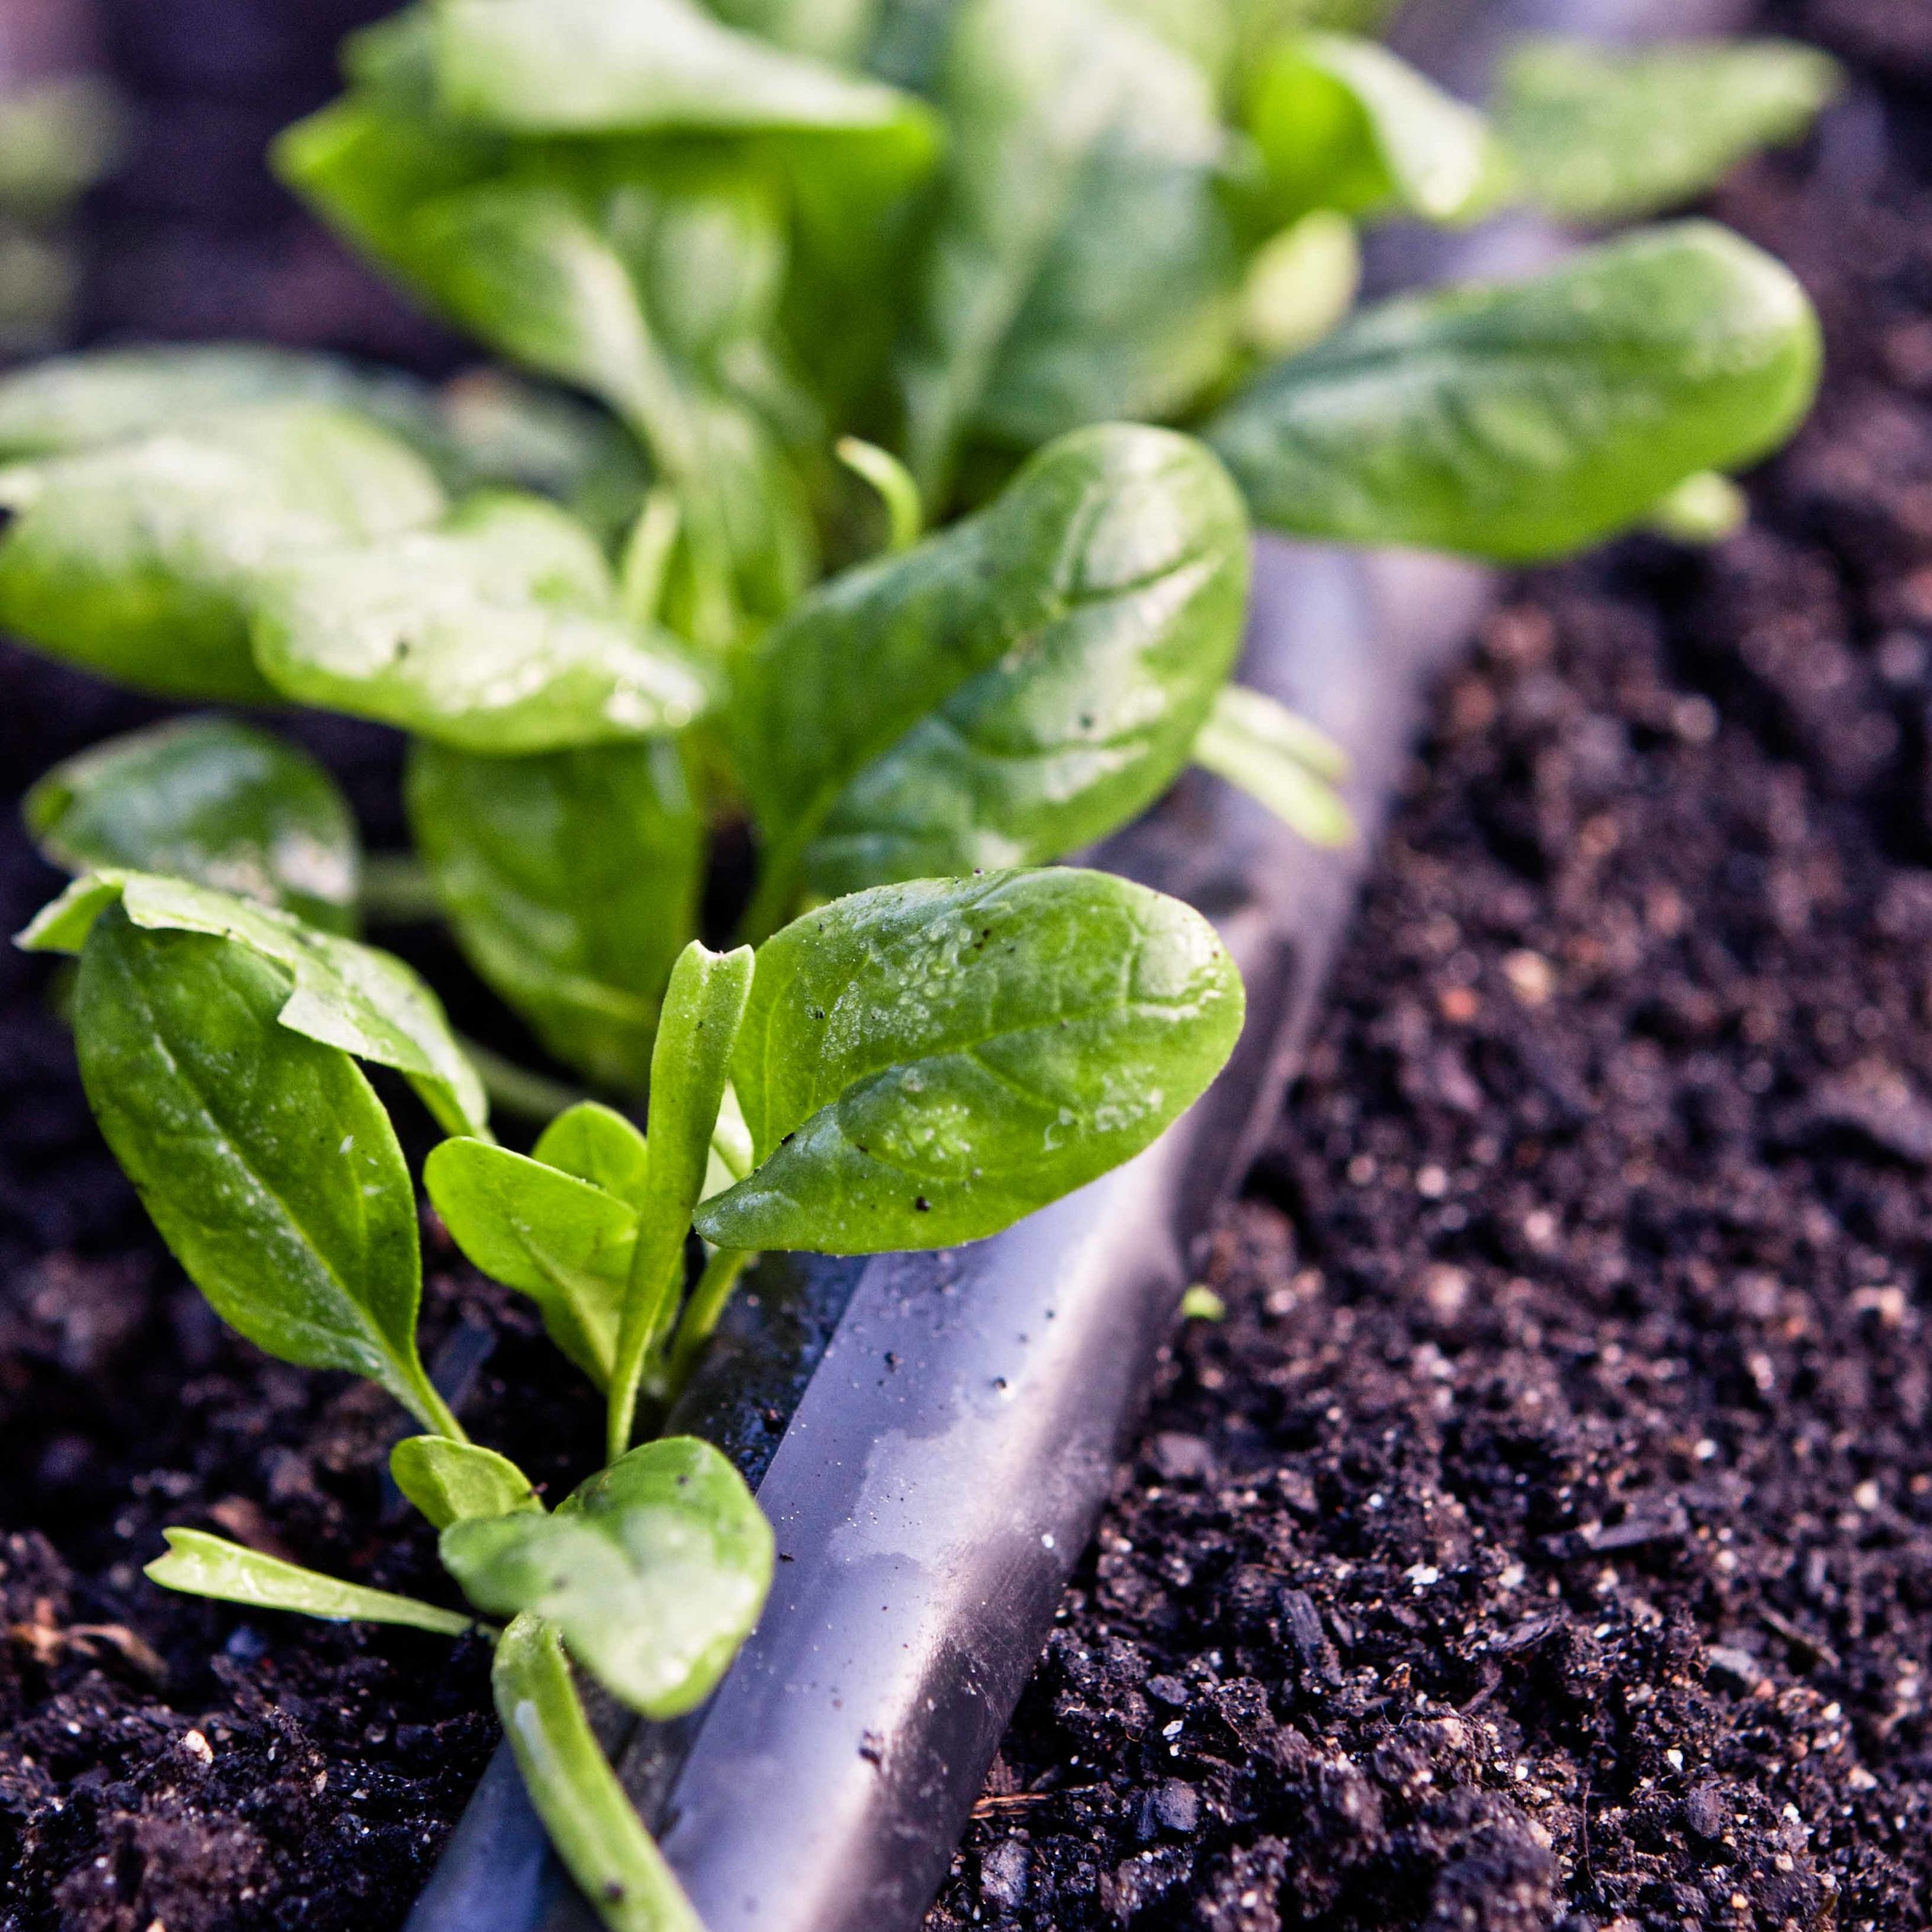 Spinach    Bloomsdale and Regiment*  //  All varieties do very well in cold weather and can tolerate temperatures as low as 20° F.